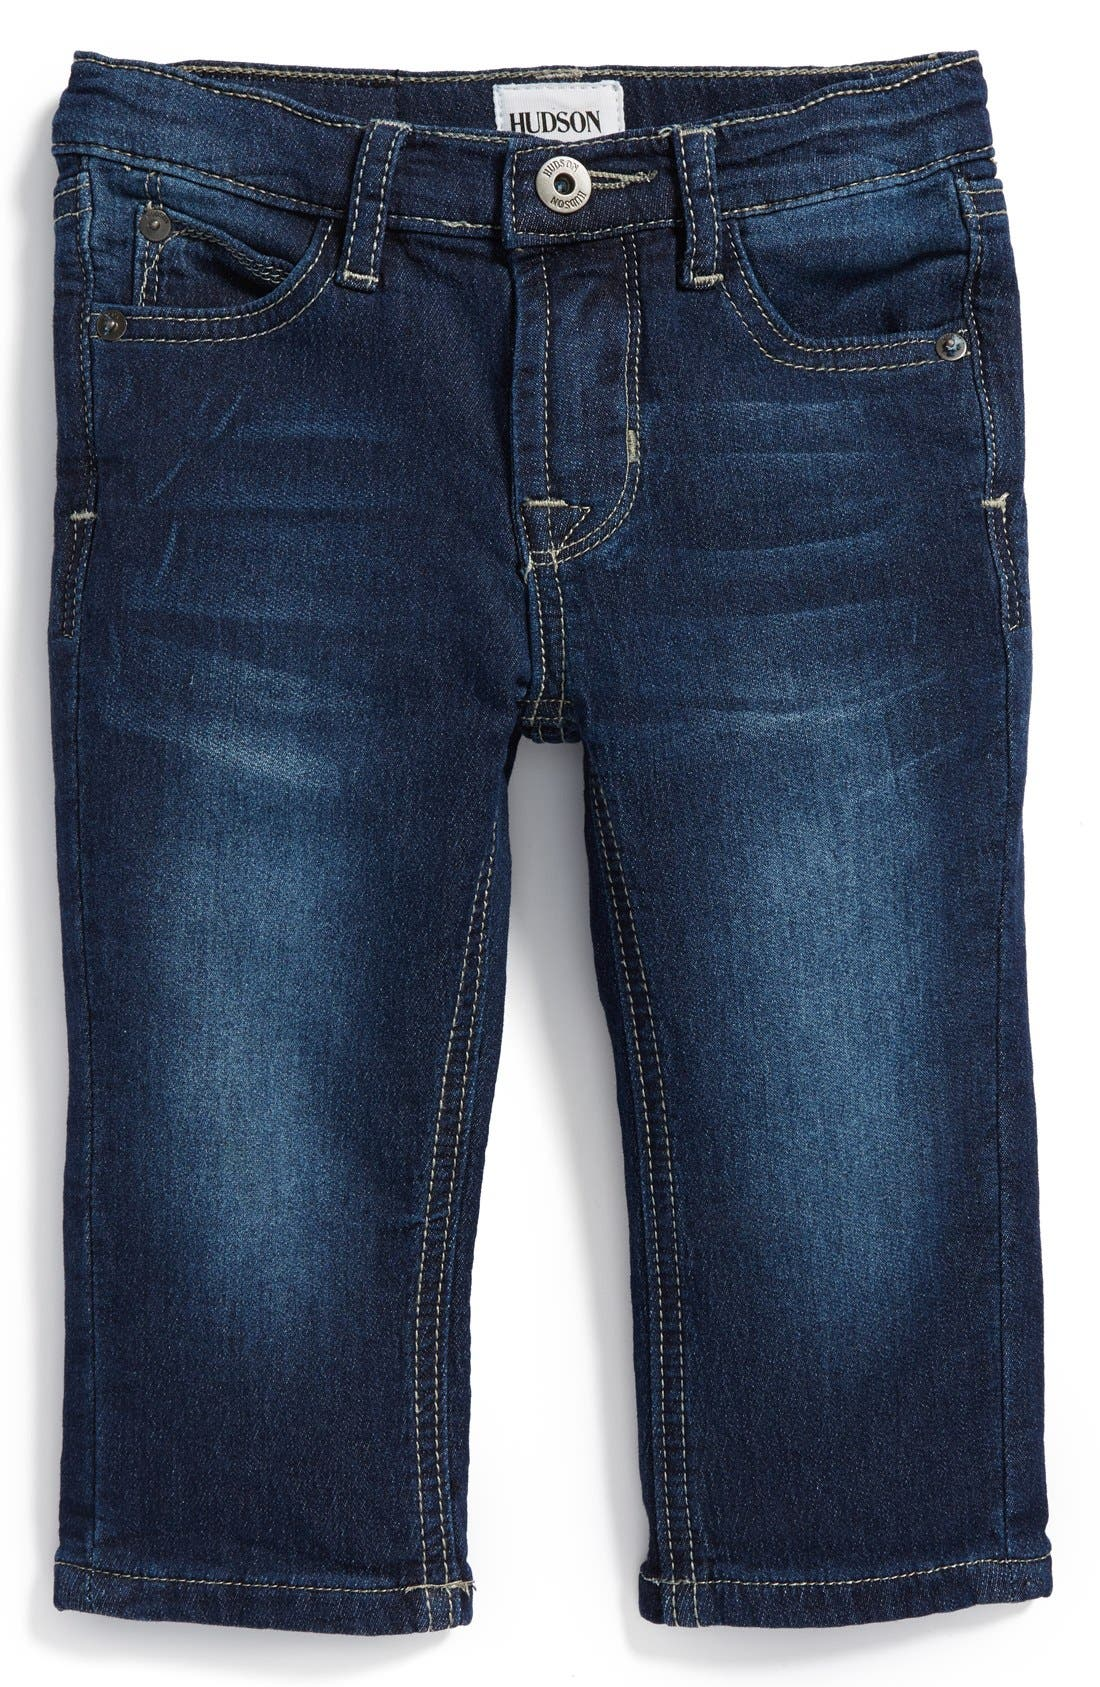 Main Image - Hudson Kids 'Parker' French Terry Skinny Jeans (Baby Boys) (Online Only)